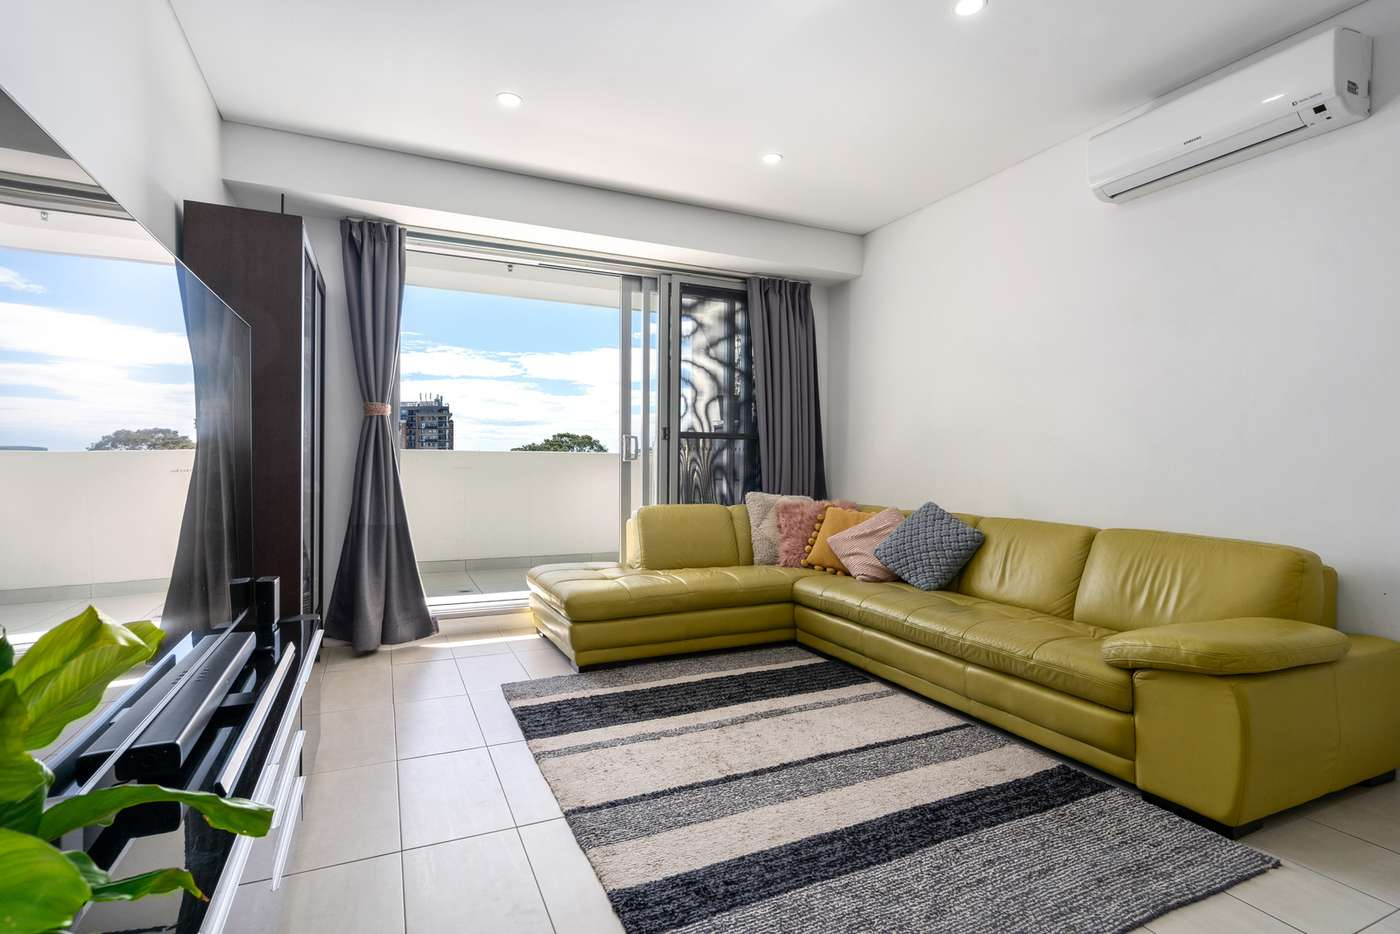 Main view of Homely apartment listing, 410/18 Harrow Road, Auburn NSW 2144